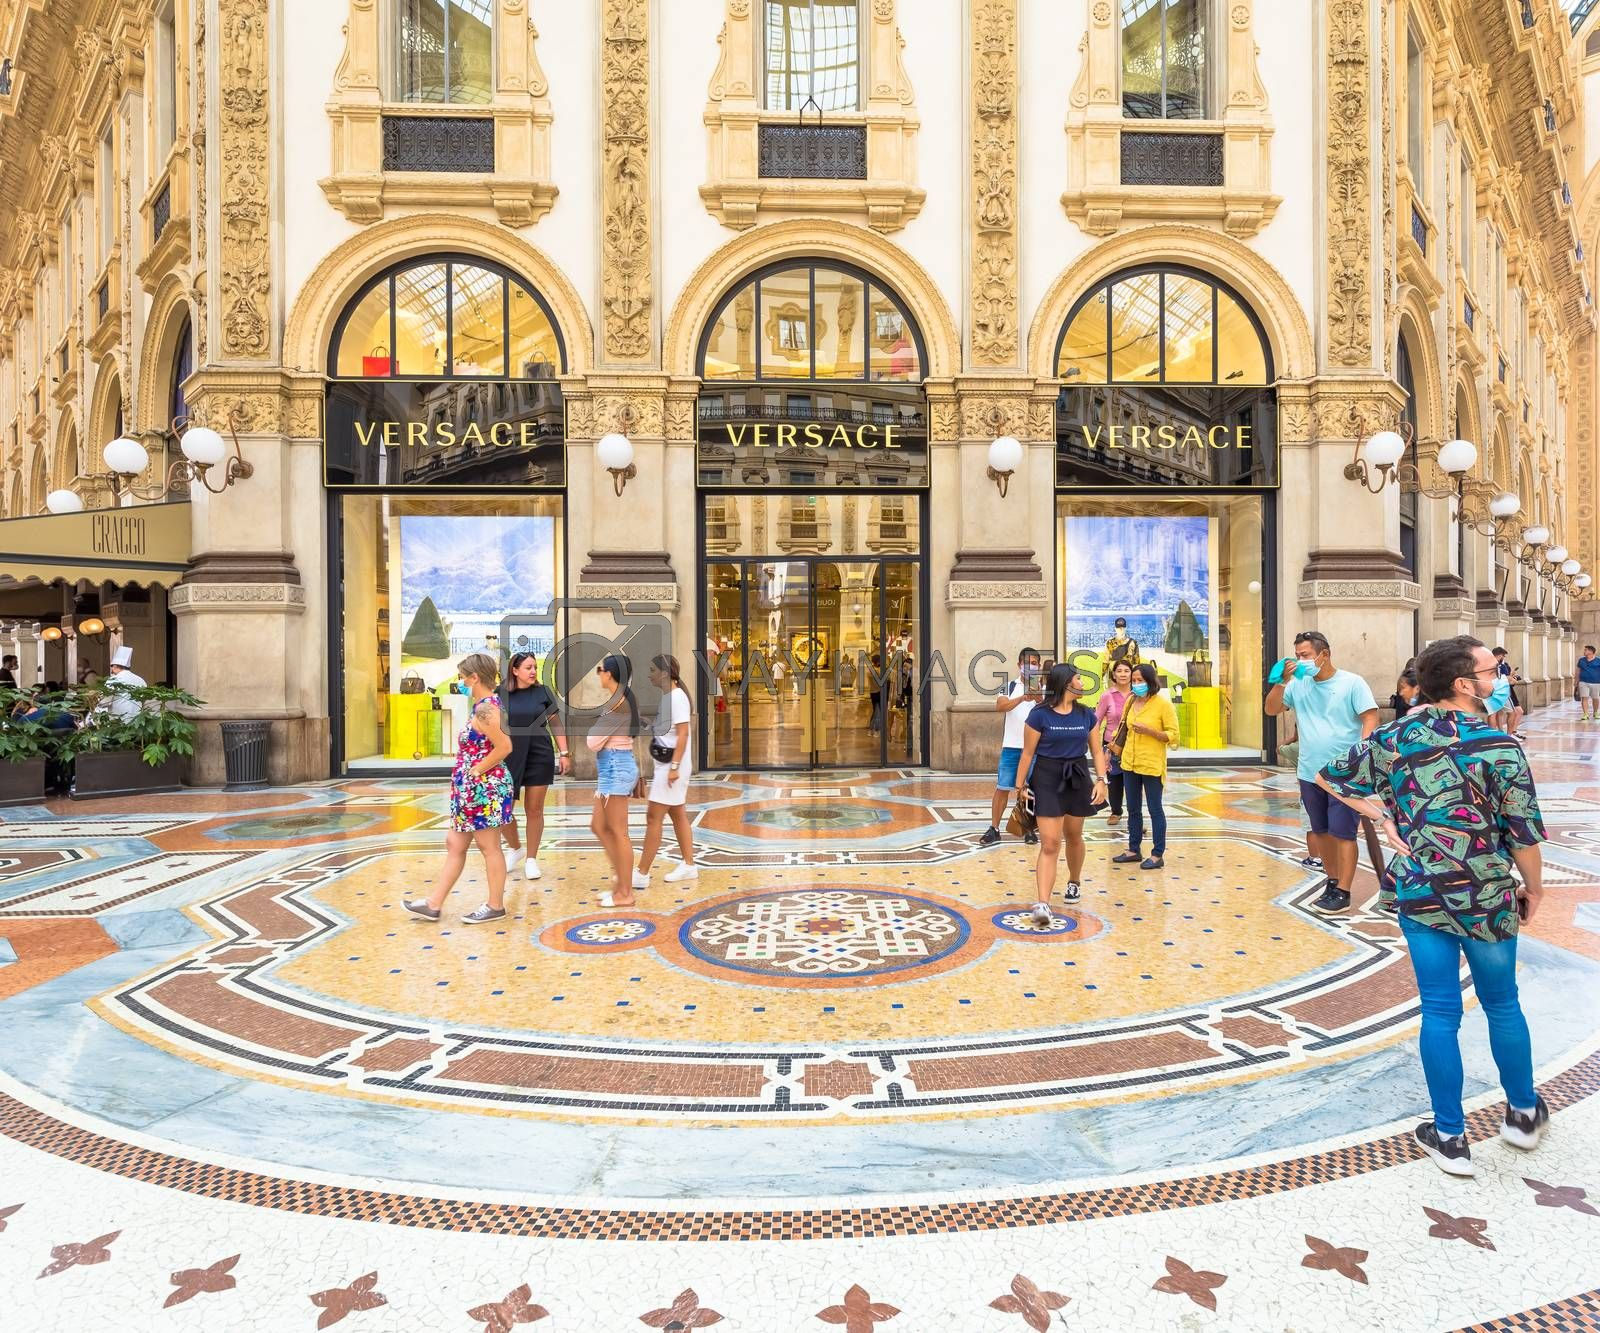 MILAN, ITALY - CIRCA SEPTEMBER 2020: Fashion shopping in Vittorio Emanuale's Gallery. People walking in front of a famous luxury boutique.